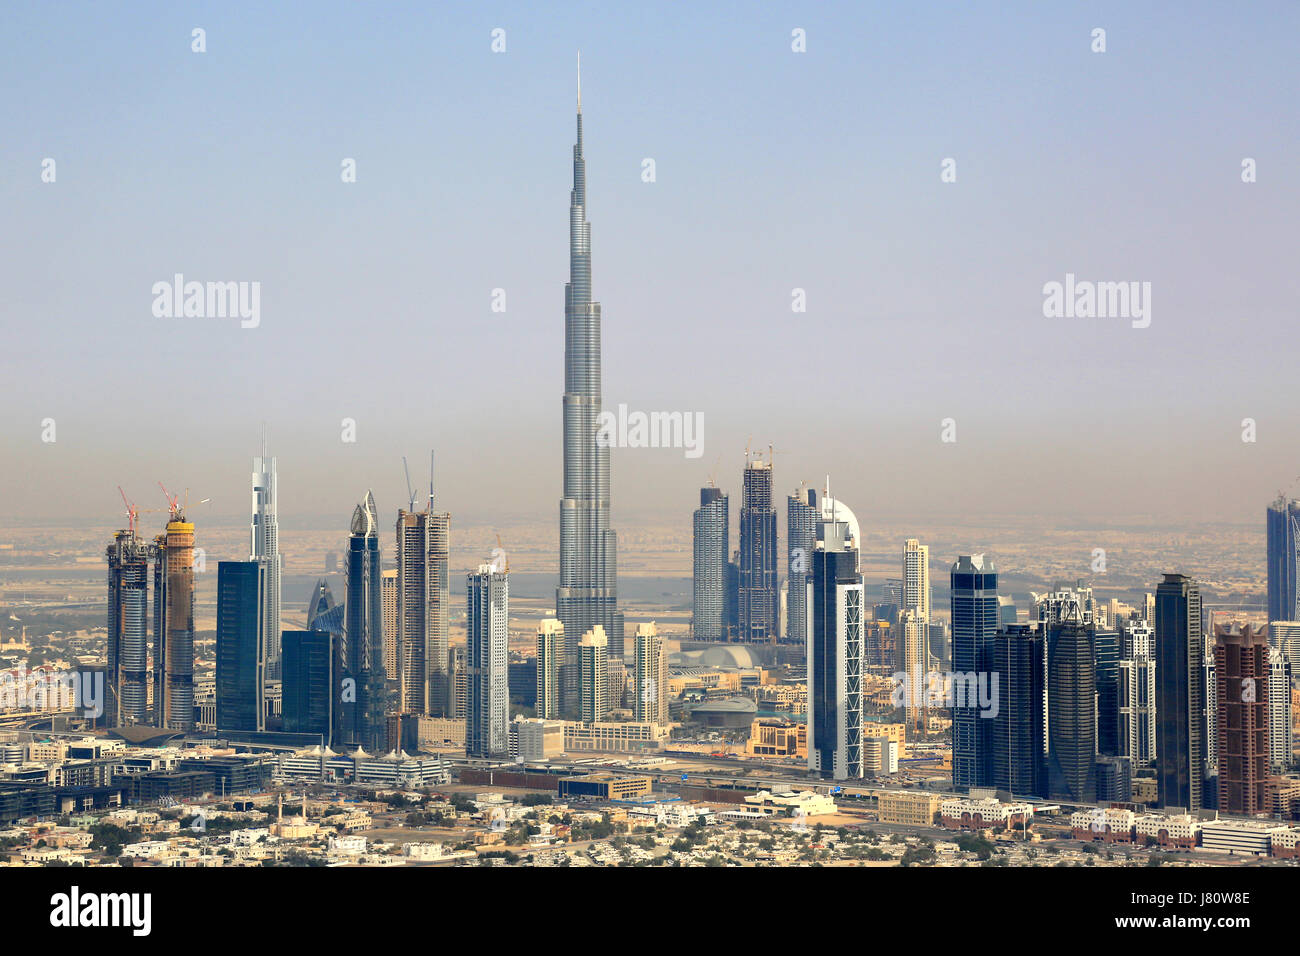 Dubai Burj Khalifa Downtown aerial view photography UAE Stock Photo